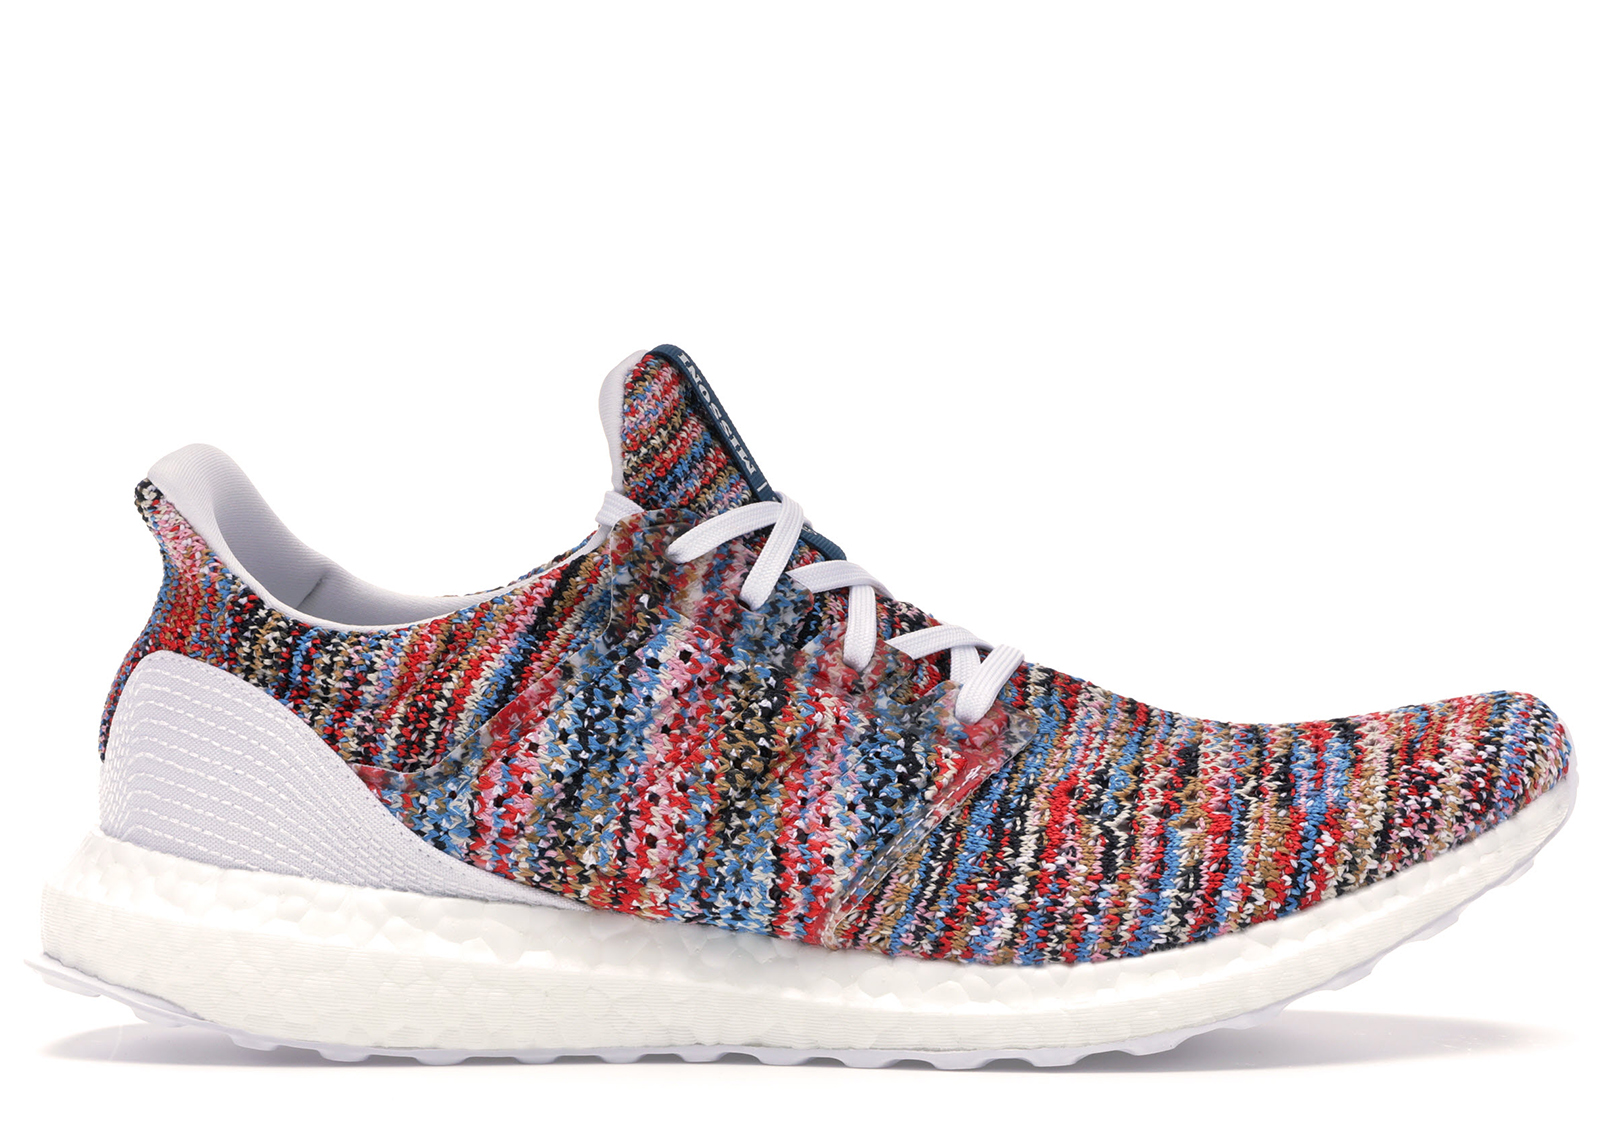 adidas Ultra Boost Clima Missoni Multi-Color